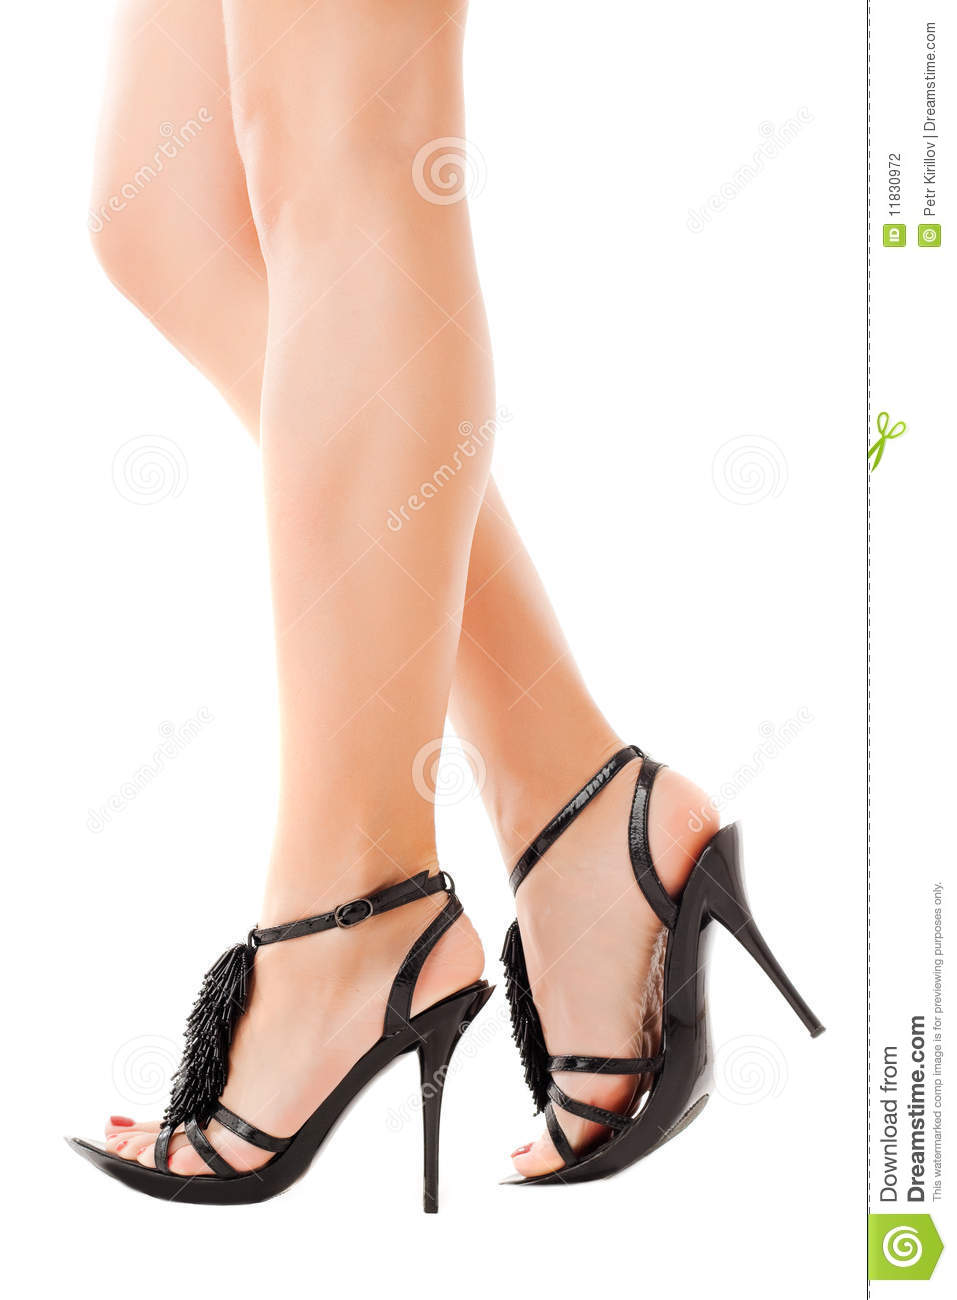 Woman Feet In Black Shoes Stock Photography - Image: 11830972